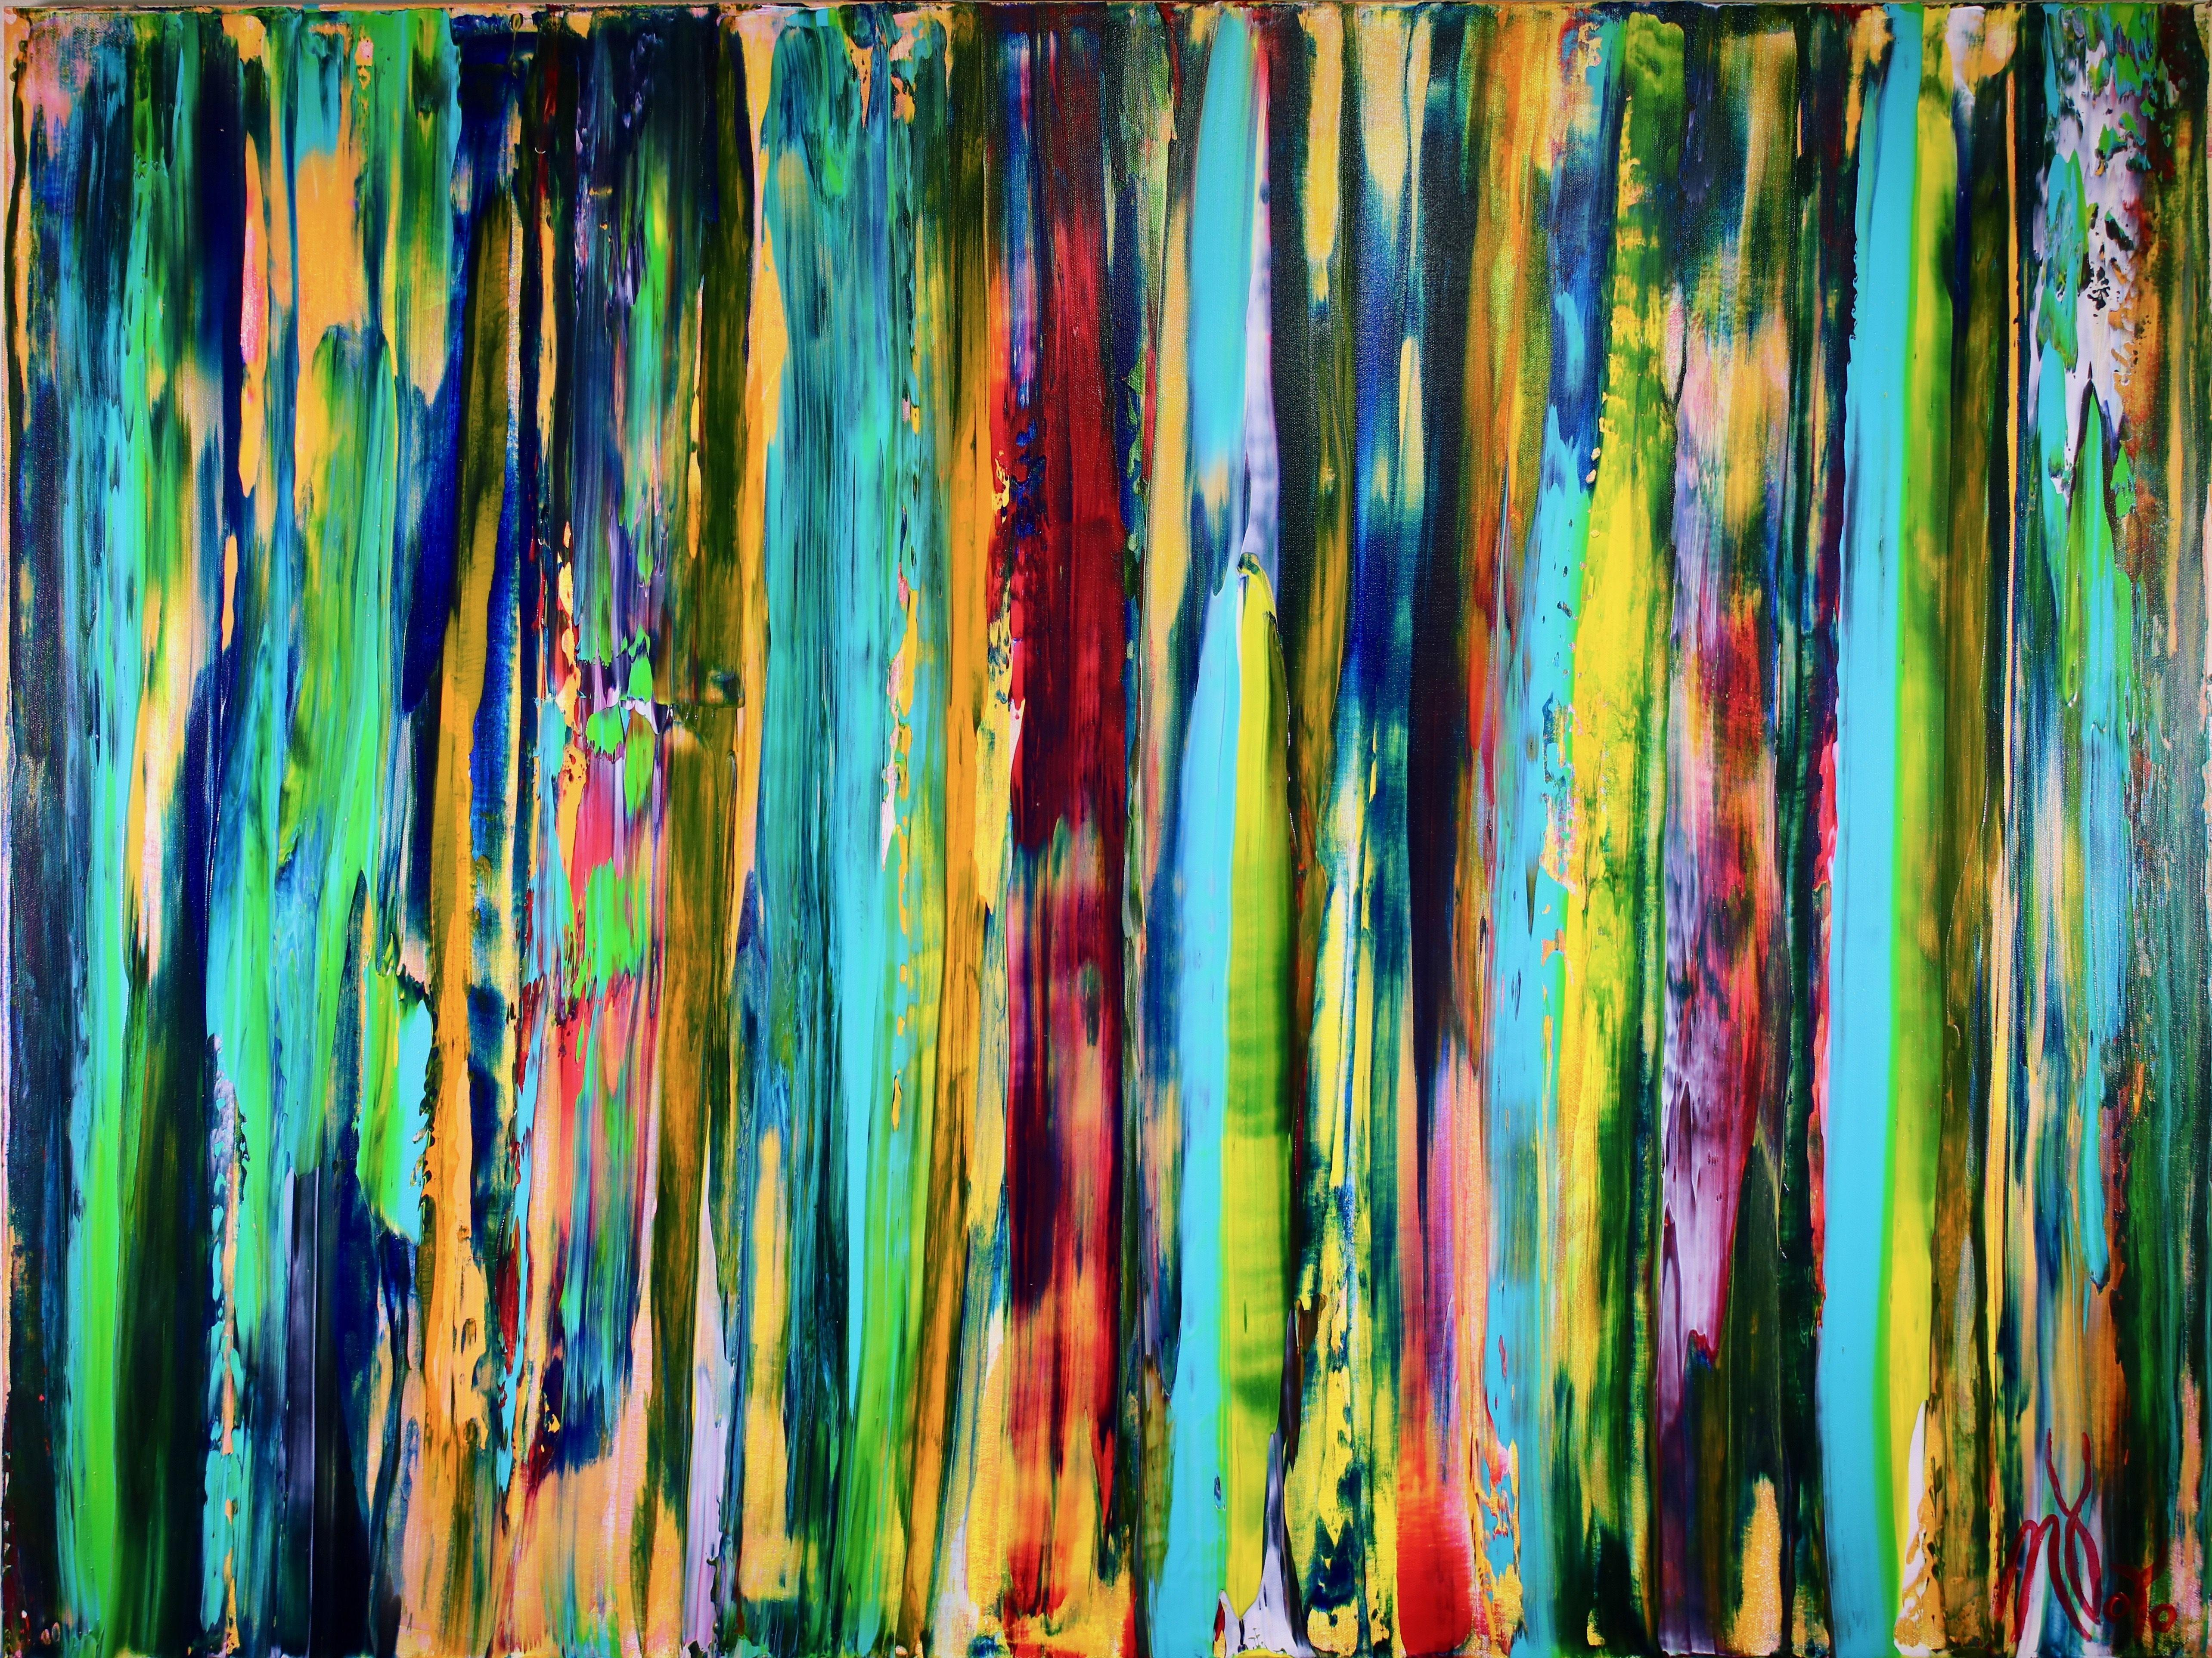 Deconstructed forest 2, Painting, Acrylic on Canvas